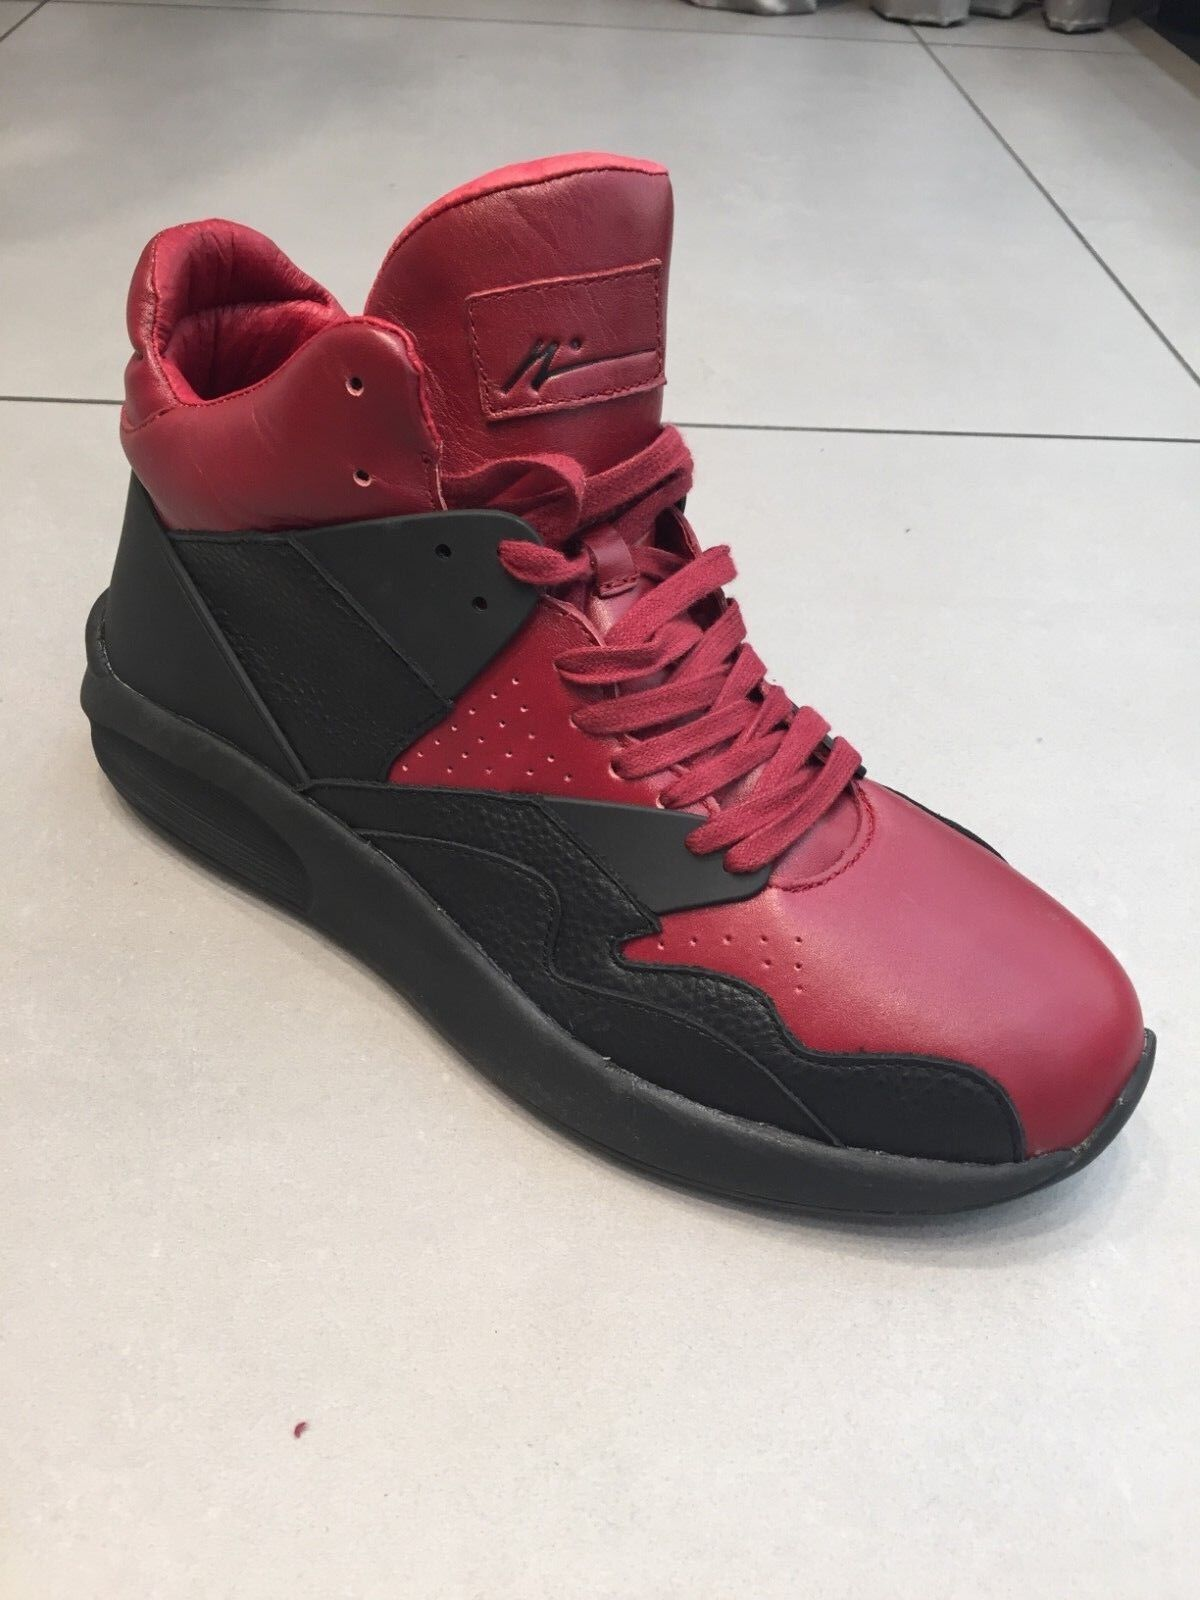 Article No Men shoes- Black Red- Brand New- size 8 9.5 10 11 12 13 retail  270